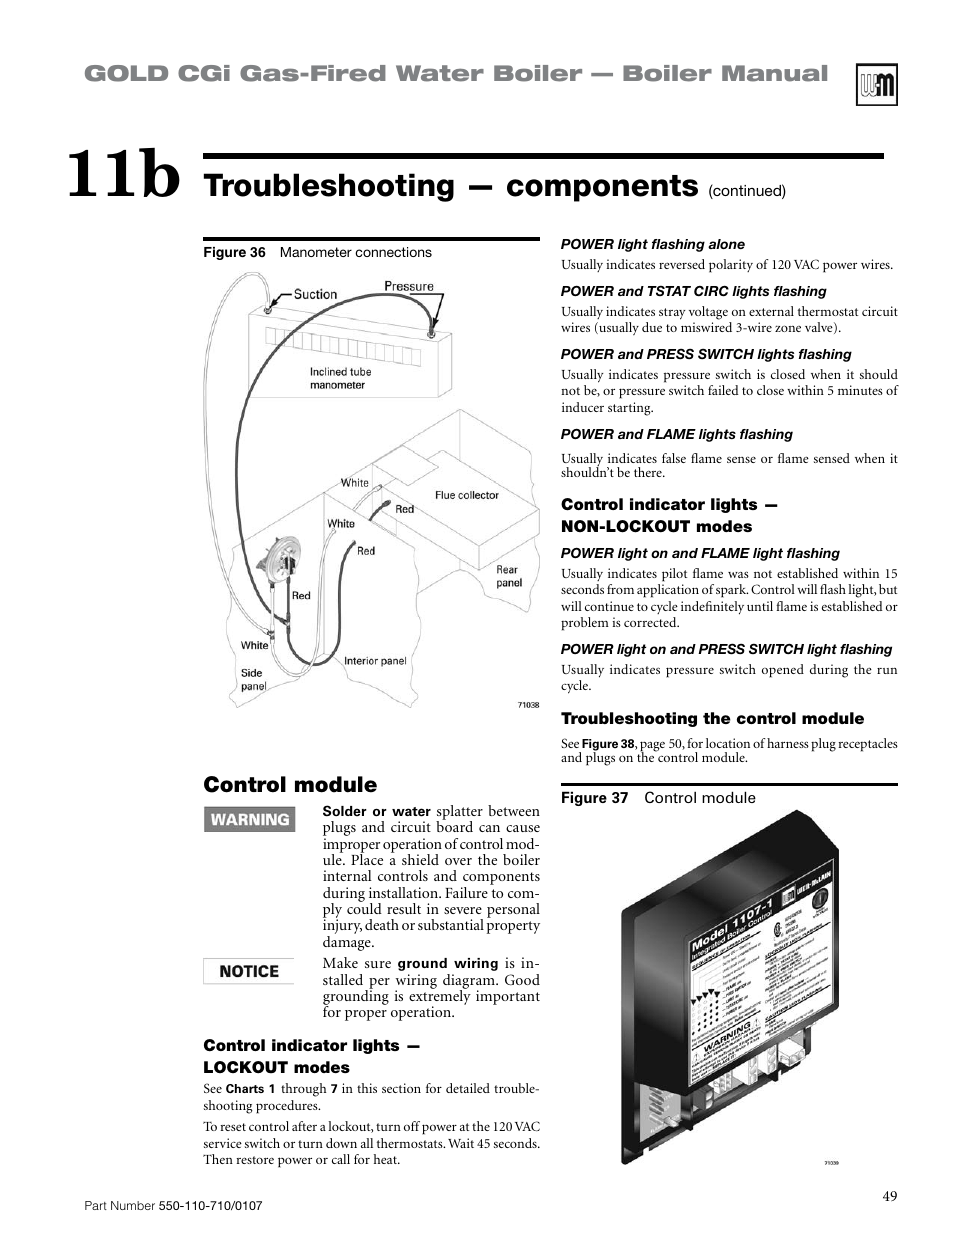 medium resolution of troubleshooting components gold cgi gas fired water boiler boiler manual control module weil mclain gold cgi series 2 user manual page 49 68